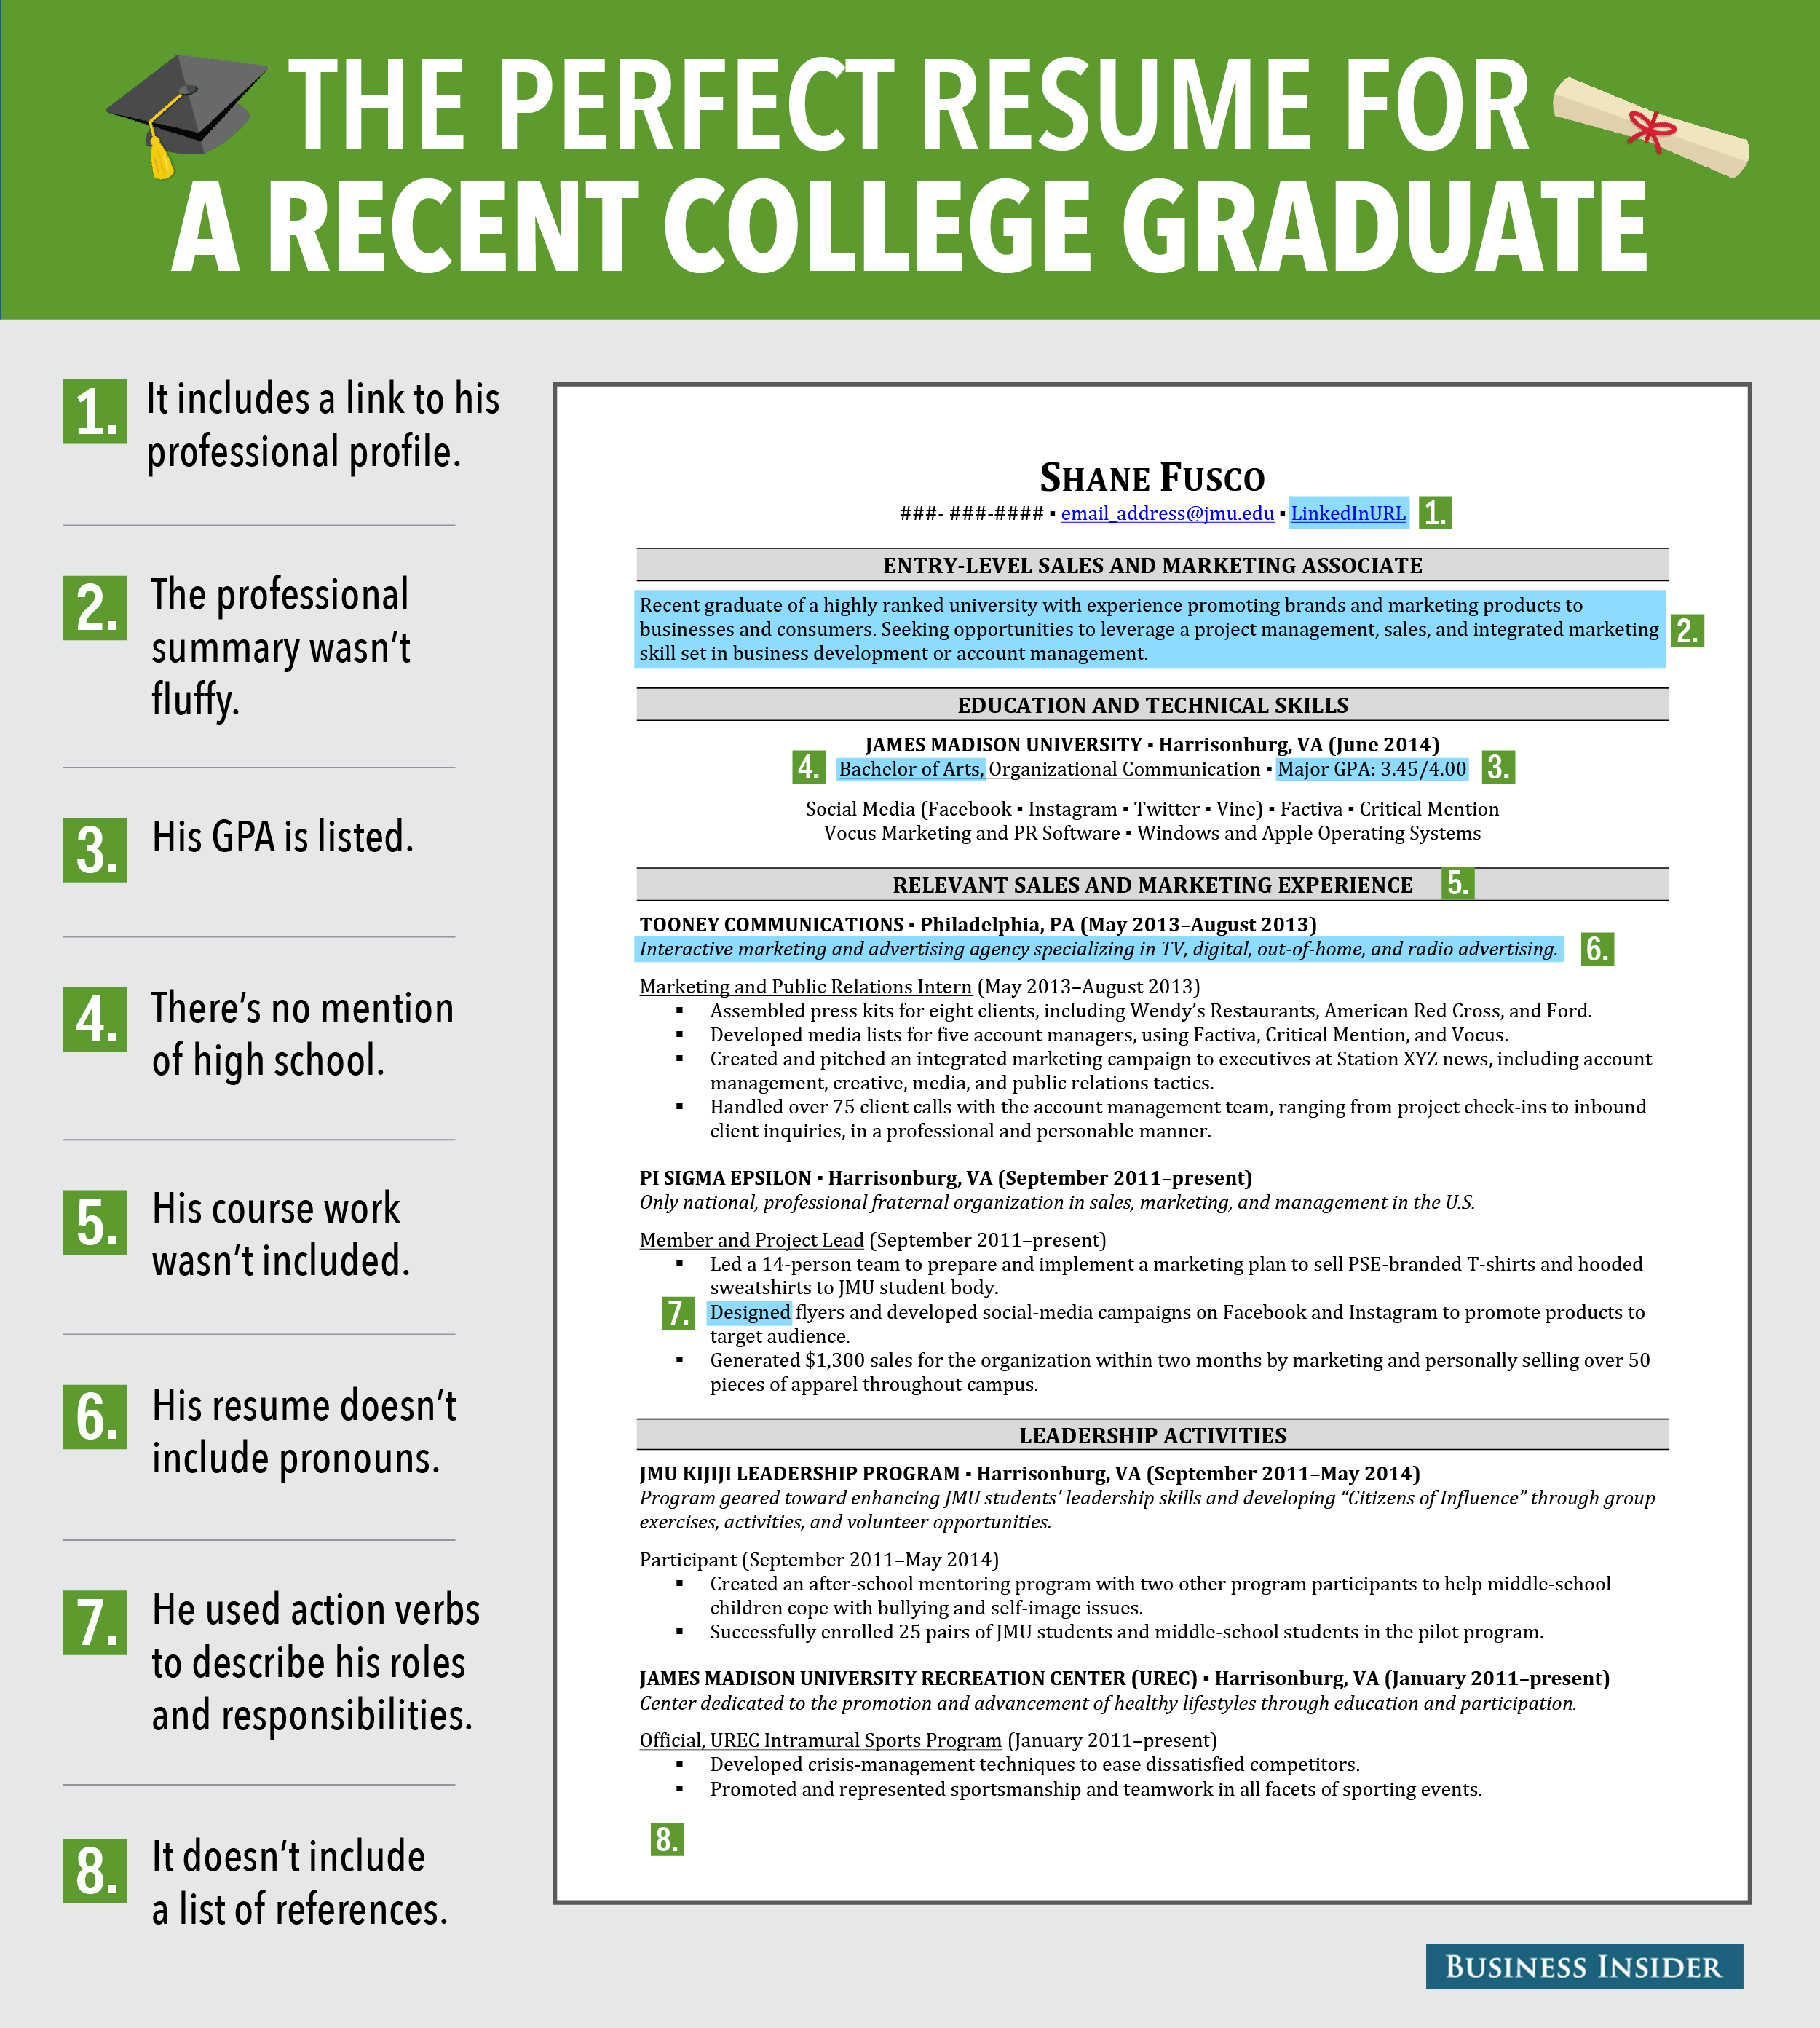 Perfect Resume For A Recent College Graduate Graphic  Business